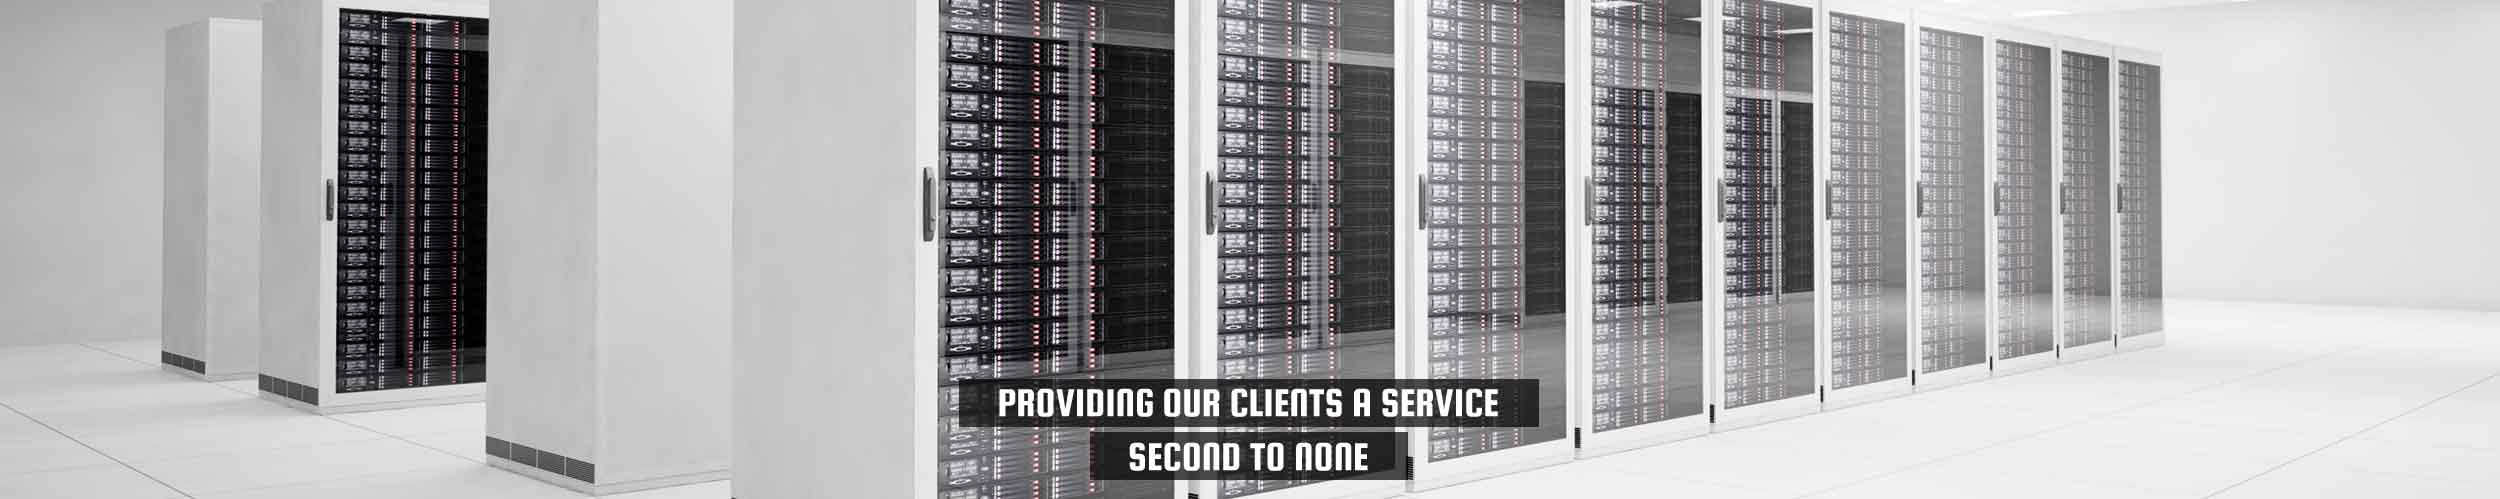 "52Degrees Terms of Service | ""providing our clients a service second to none"" 